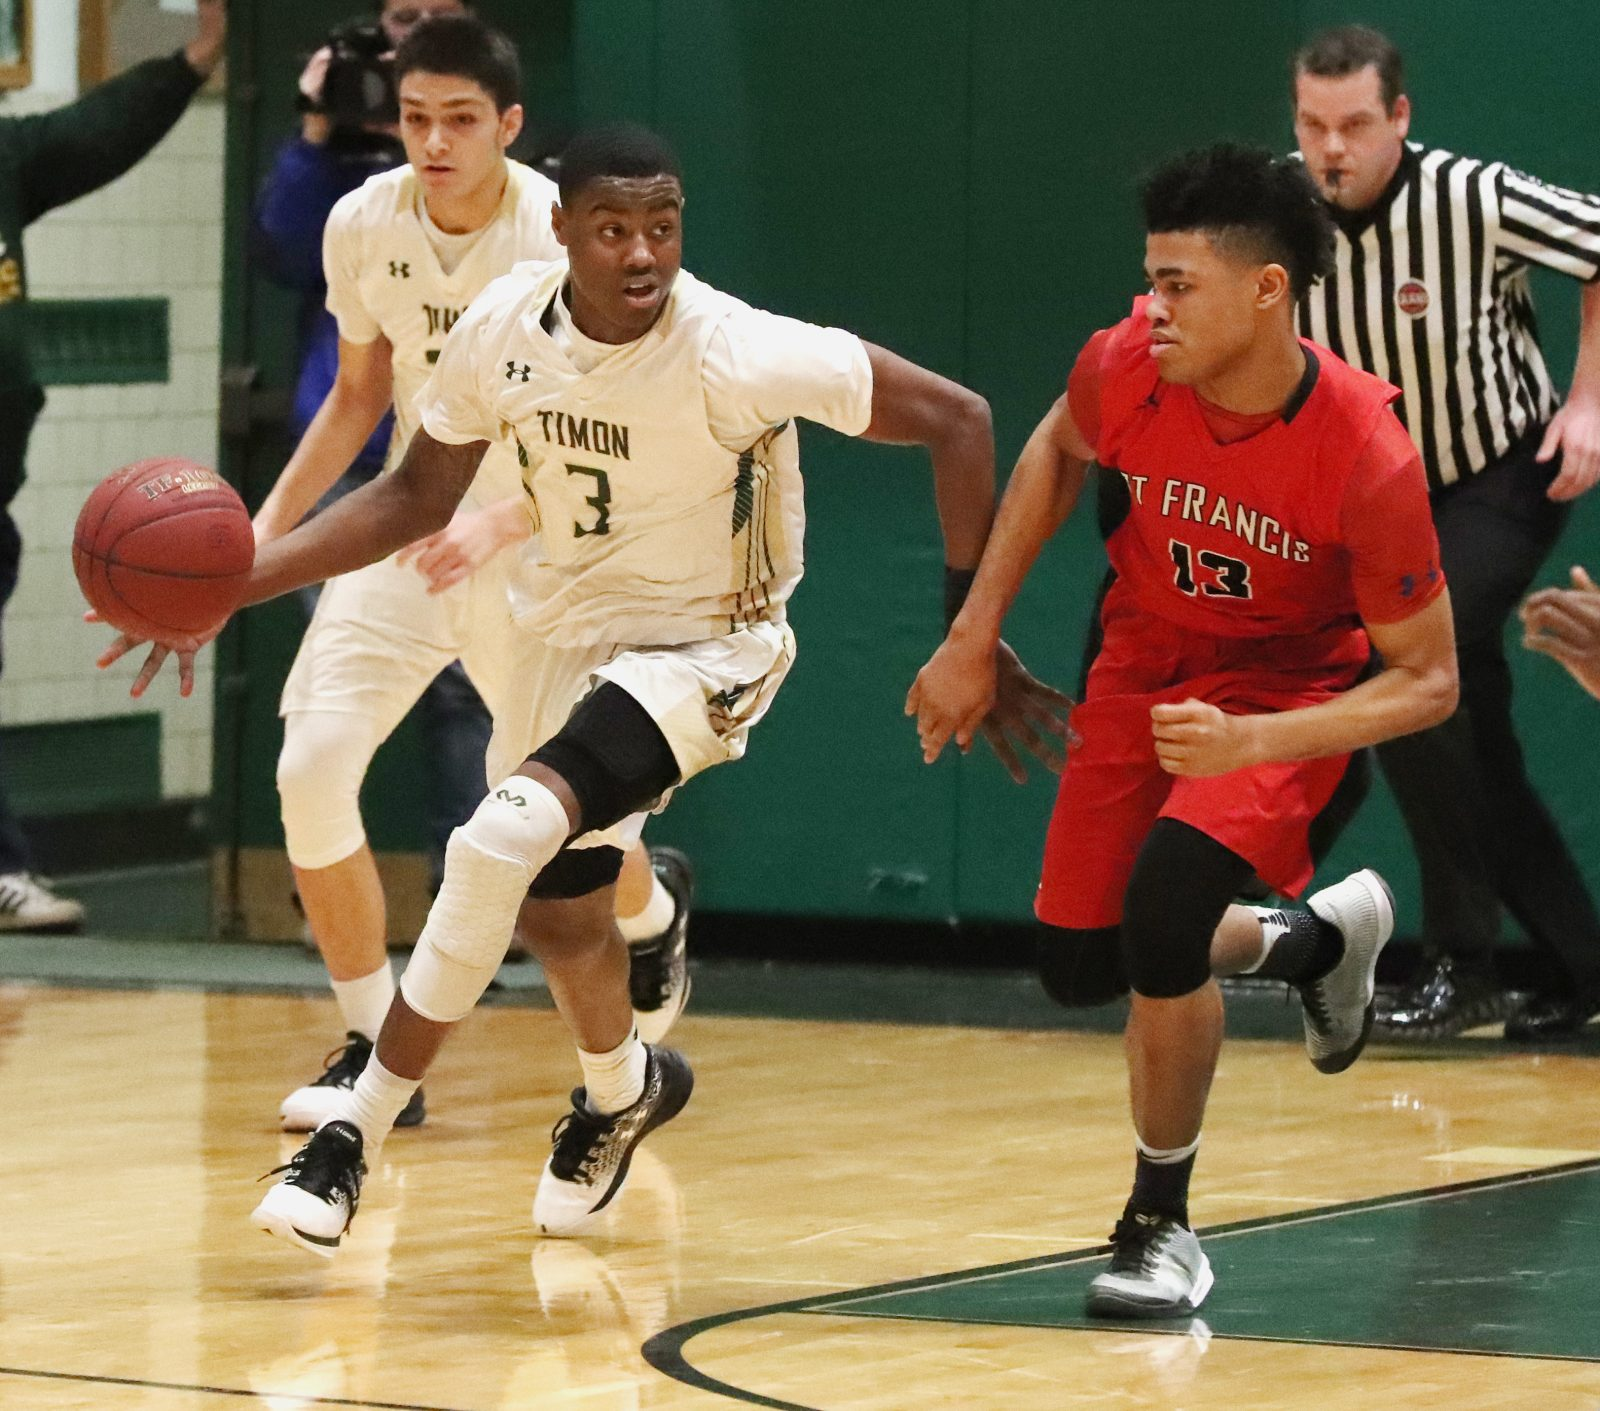 Davion Warren, left, and the Bishop Timon-St. Jude Tigers shared the League A title with Roburt Welch and the St. Francis Red Raiders. A tiebreaker determined that Timon will be the top seed in the Manhattan Cup playoffs.  (James P. McCoy/Buffalo News)